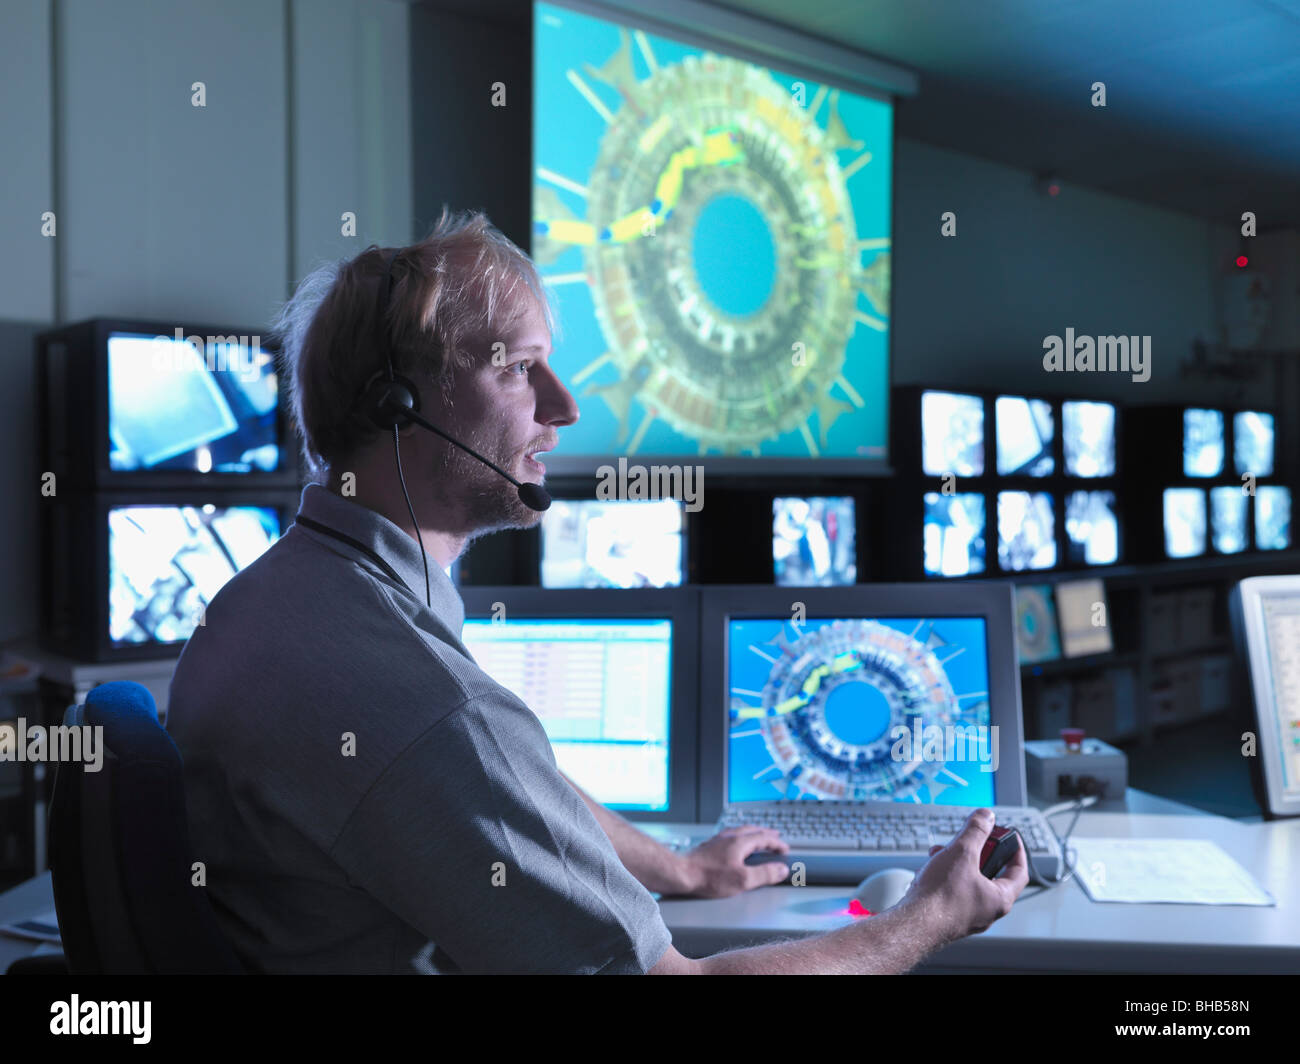 Fusion Reactor Scientist At Work - Stock Image